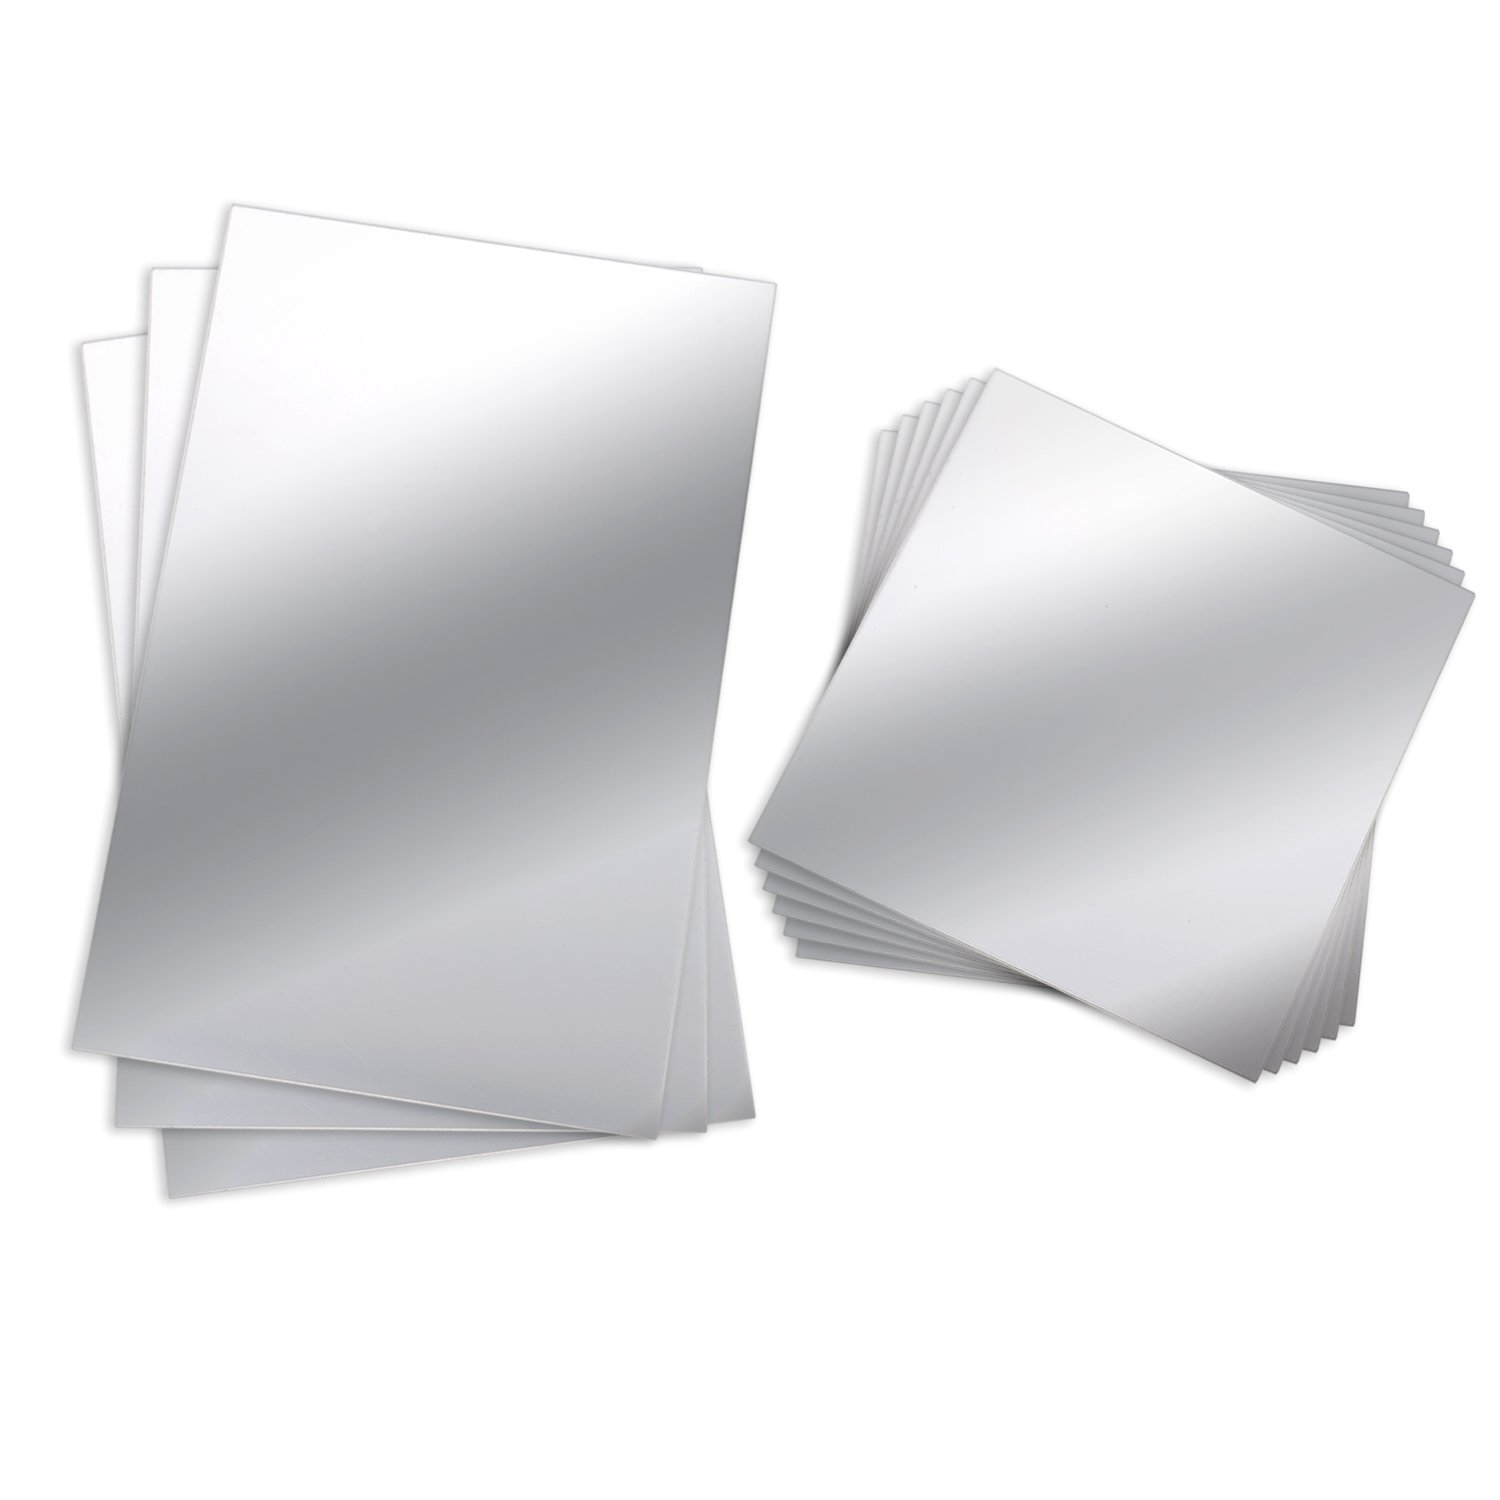 BBTO 9 Pieces Mirror Sheets Flexible Non Glass Mirror Plastic Mirror Self Adhesive Tiles Mirror Wall Stickers, 6 Inch 6 Inch 6 Inch 9 Inch